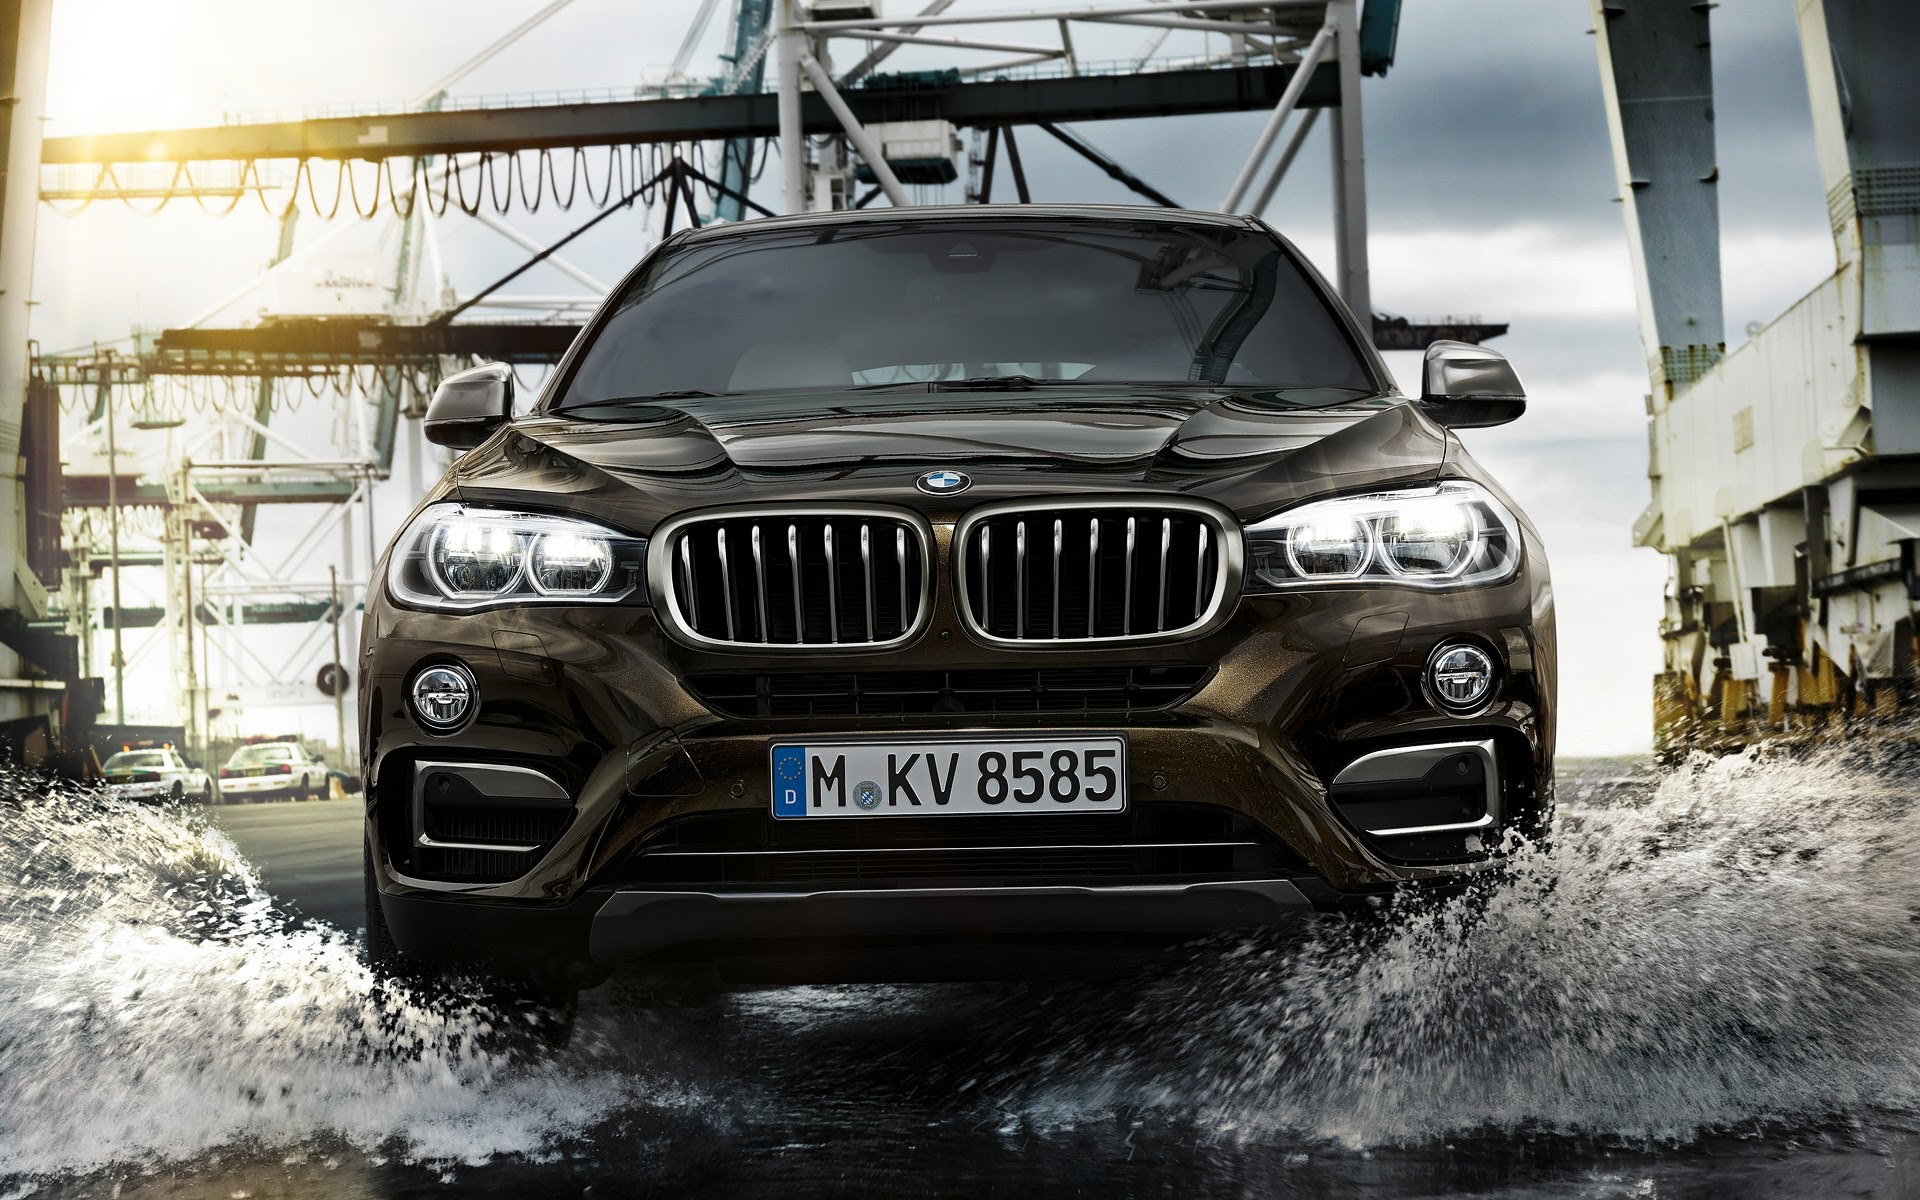 2015 Bmw X6 Wallpapers High Quality Download Free